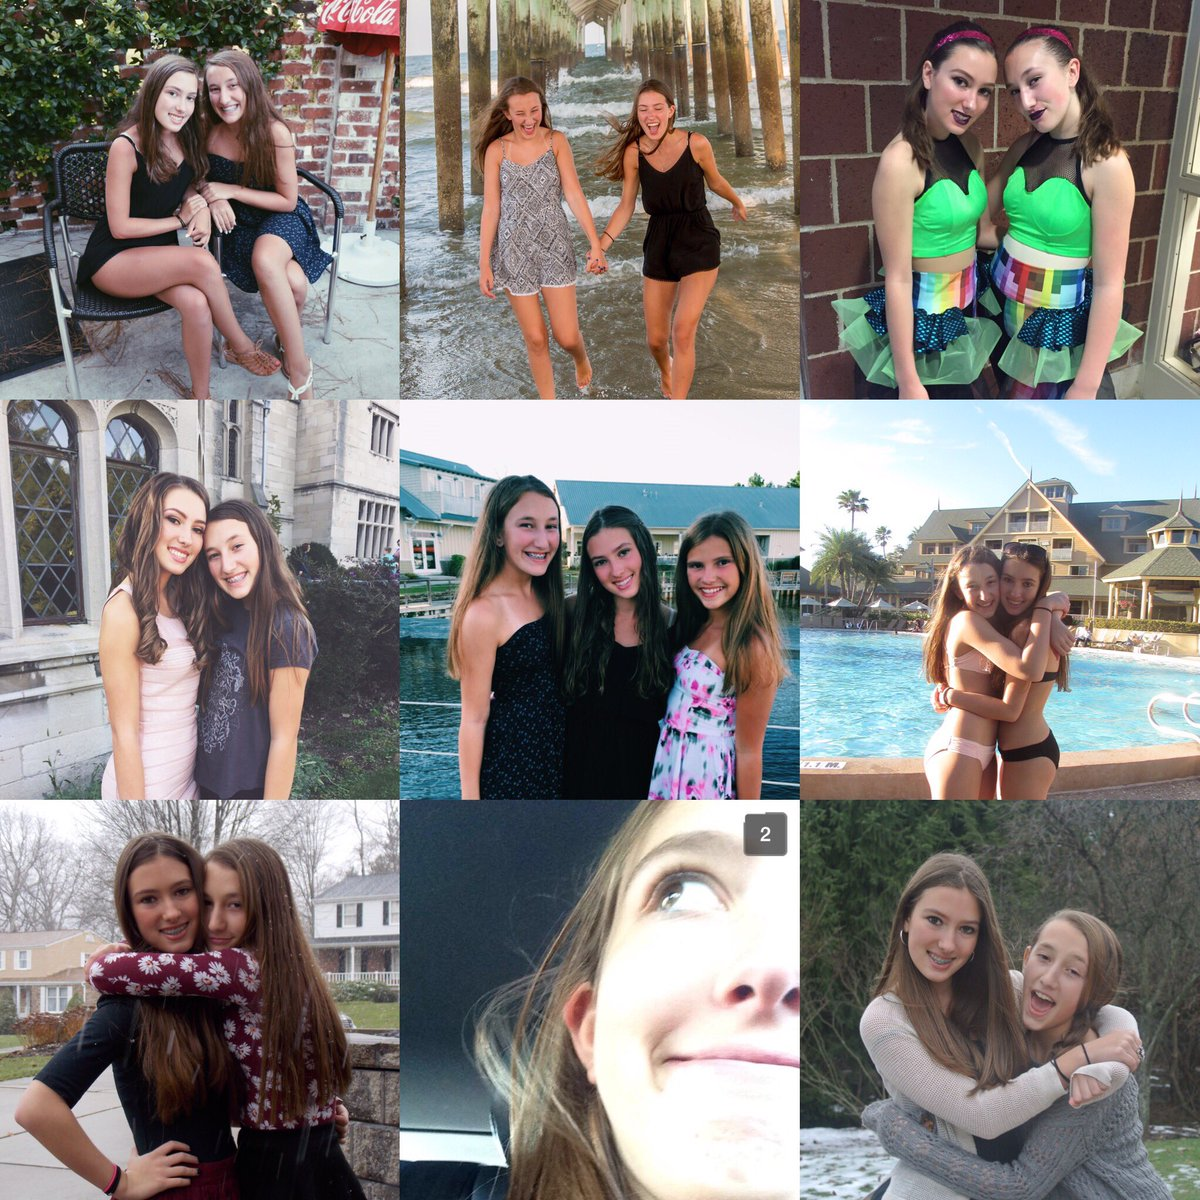 happy birthday best friend I love you forever and ever @Taylor_trasatti